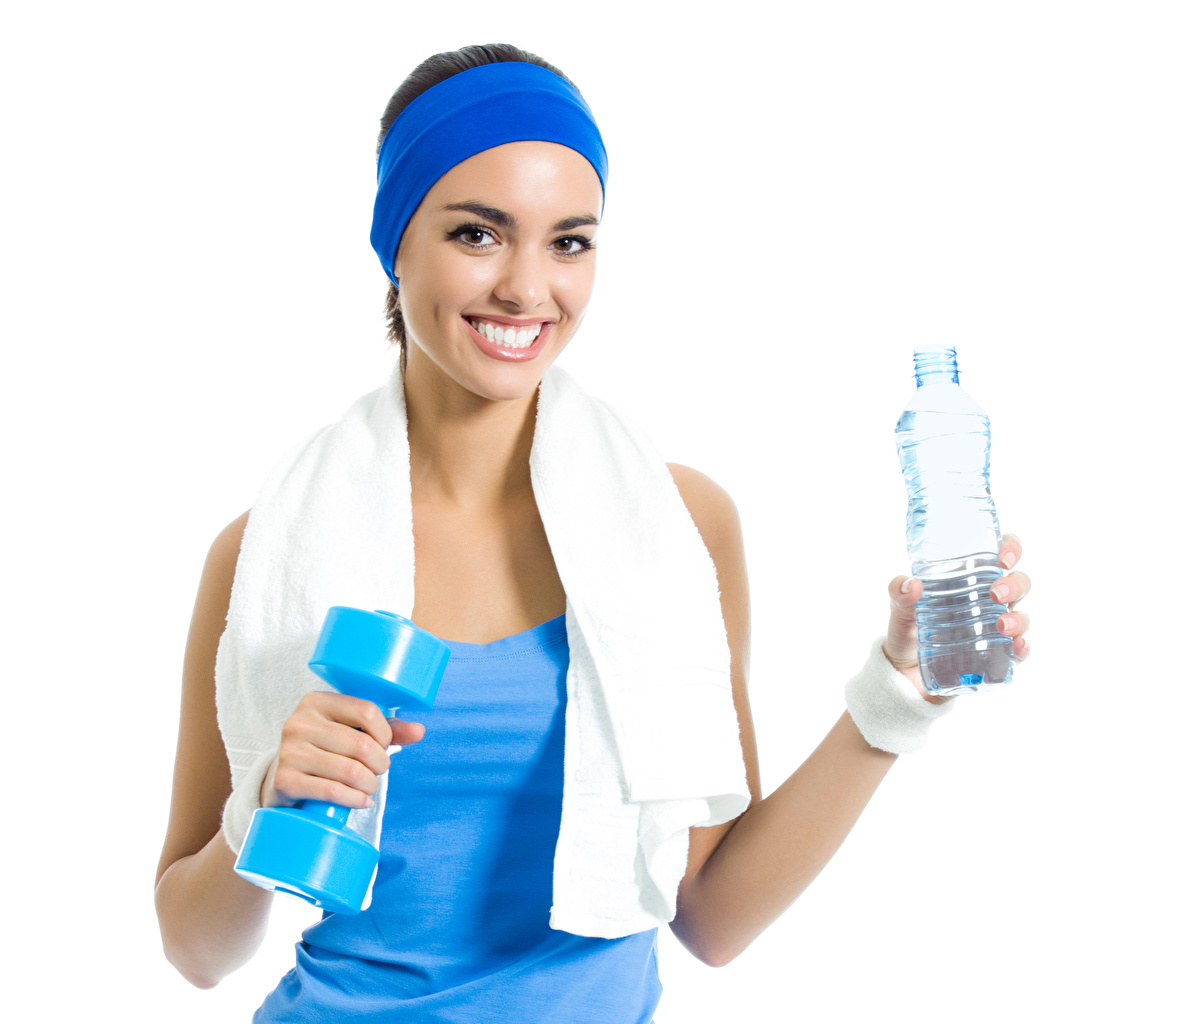 Wallpaper Smile Fitness Sport Girls dumbbell Towel Bottle Staring White background Dumbbells bottles Glance